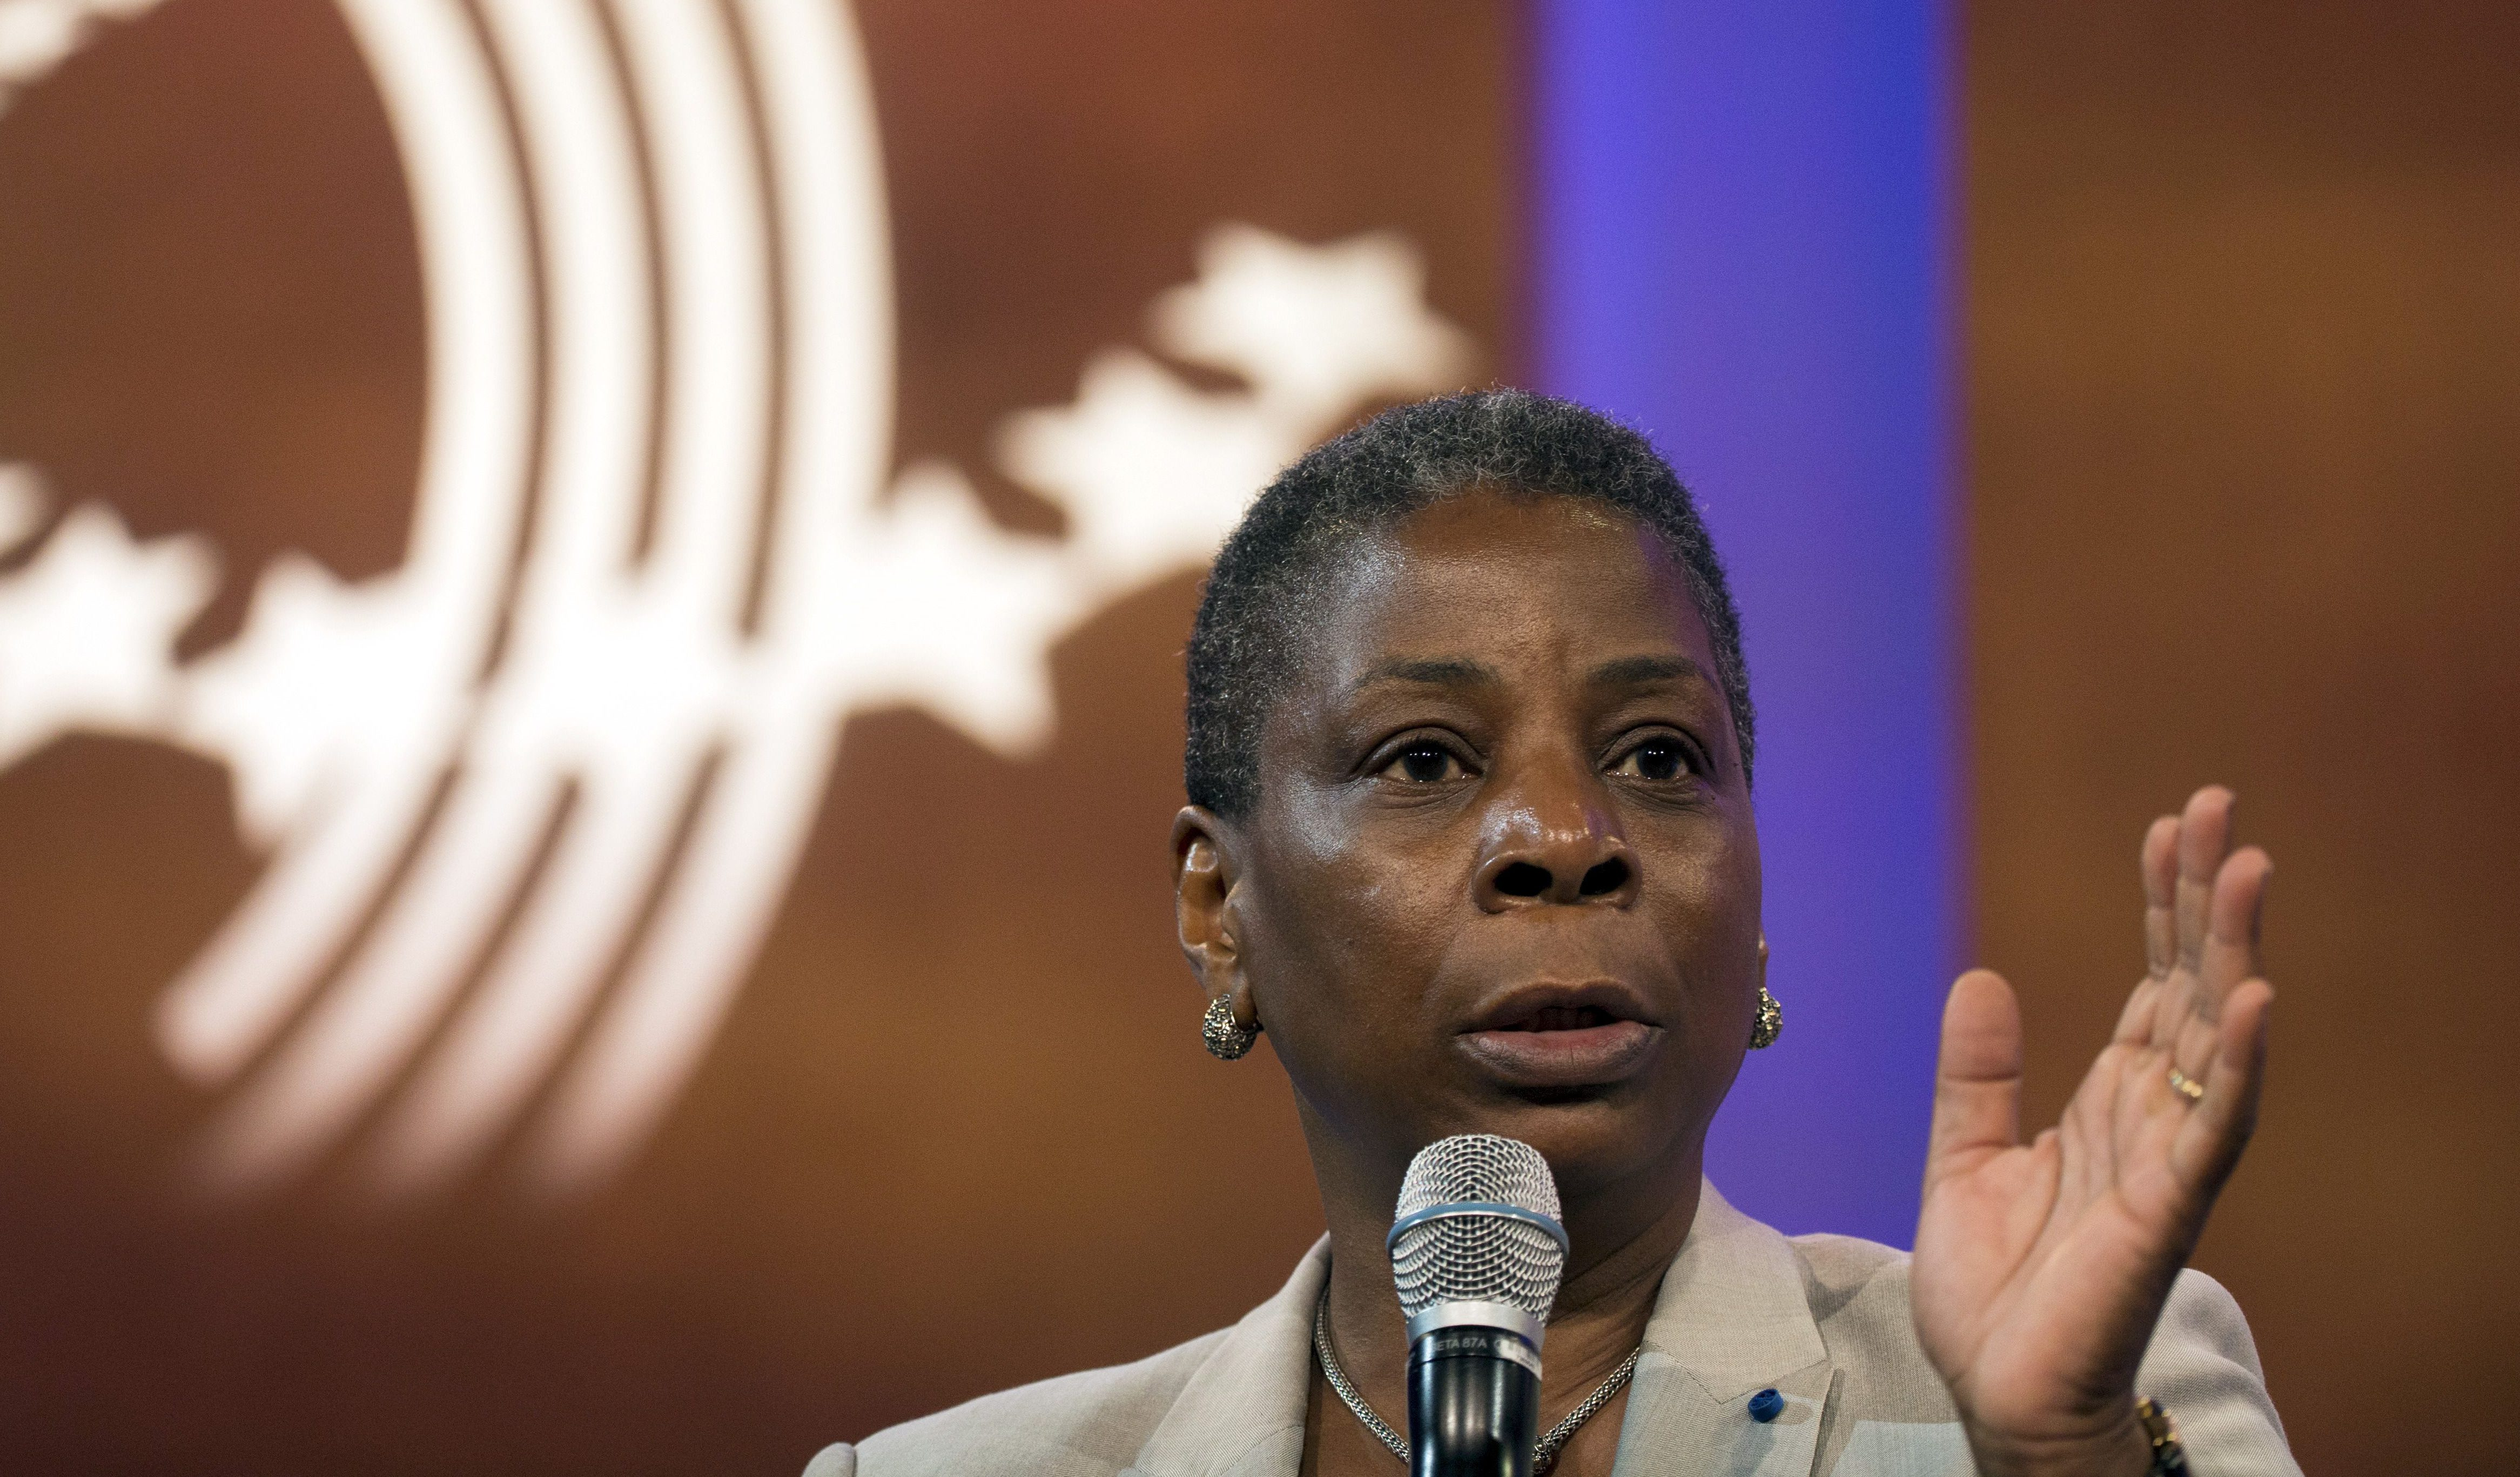 Ursula Burns, chief executive officer of Xerox Corporation, takes part in a discussion during the Clinton Global Initiative's annual meeting in New York